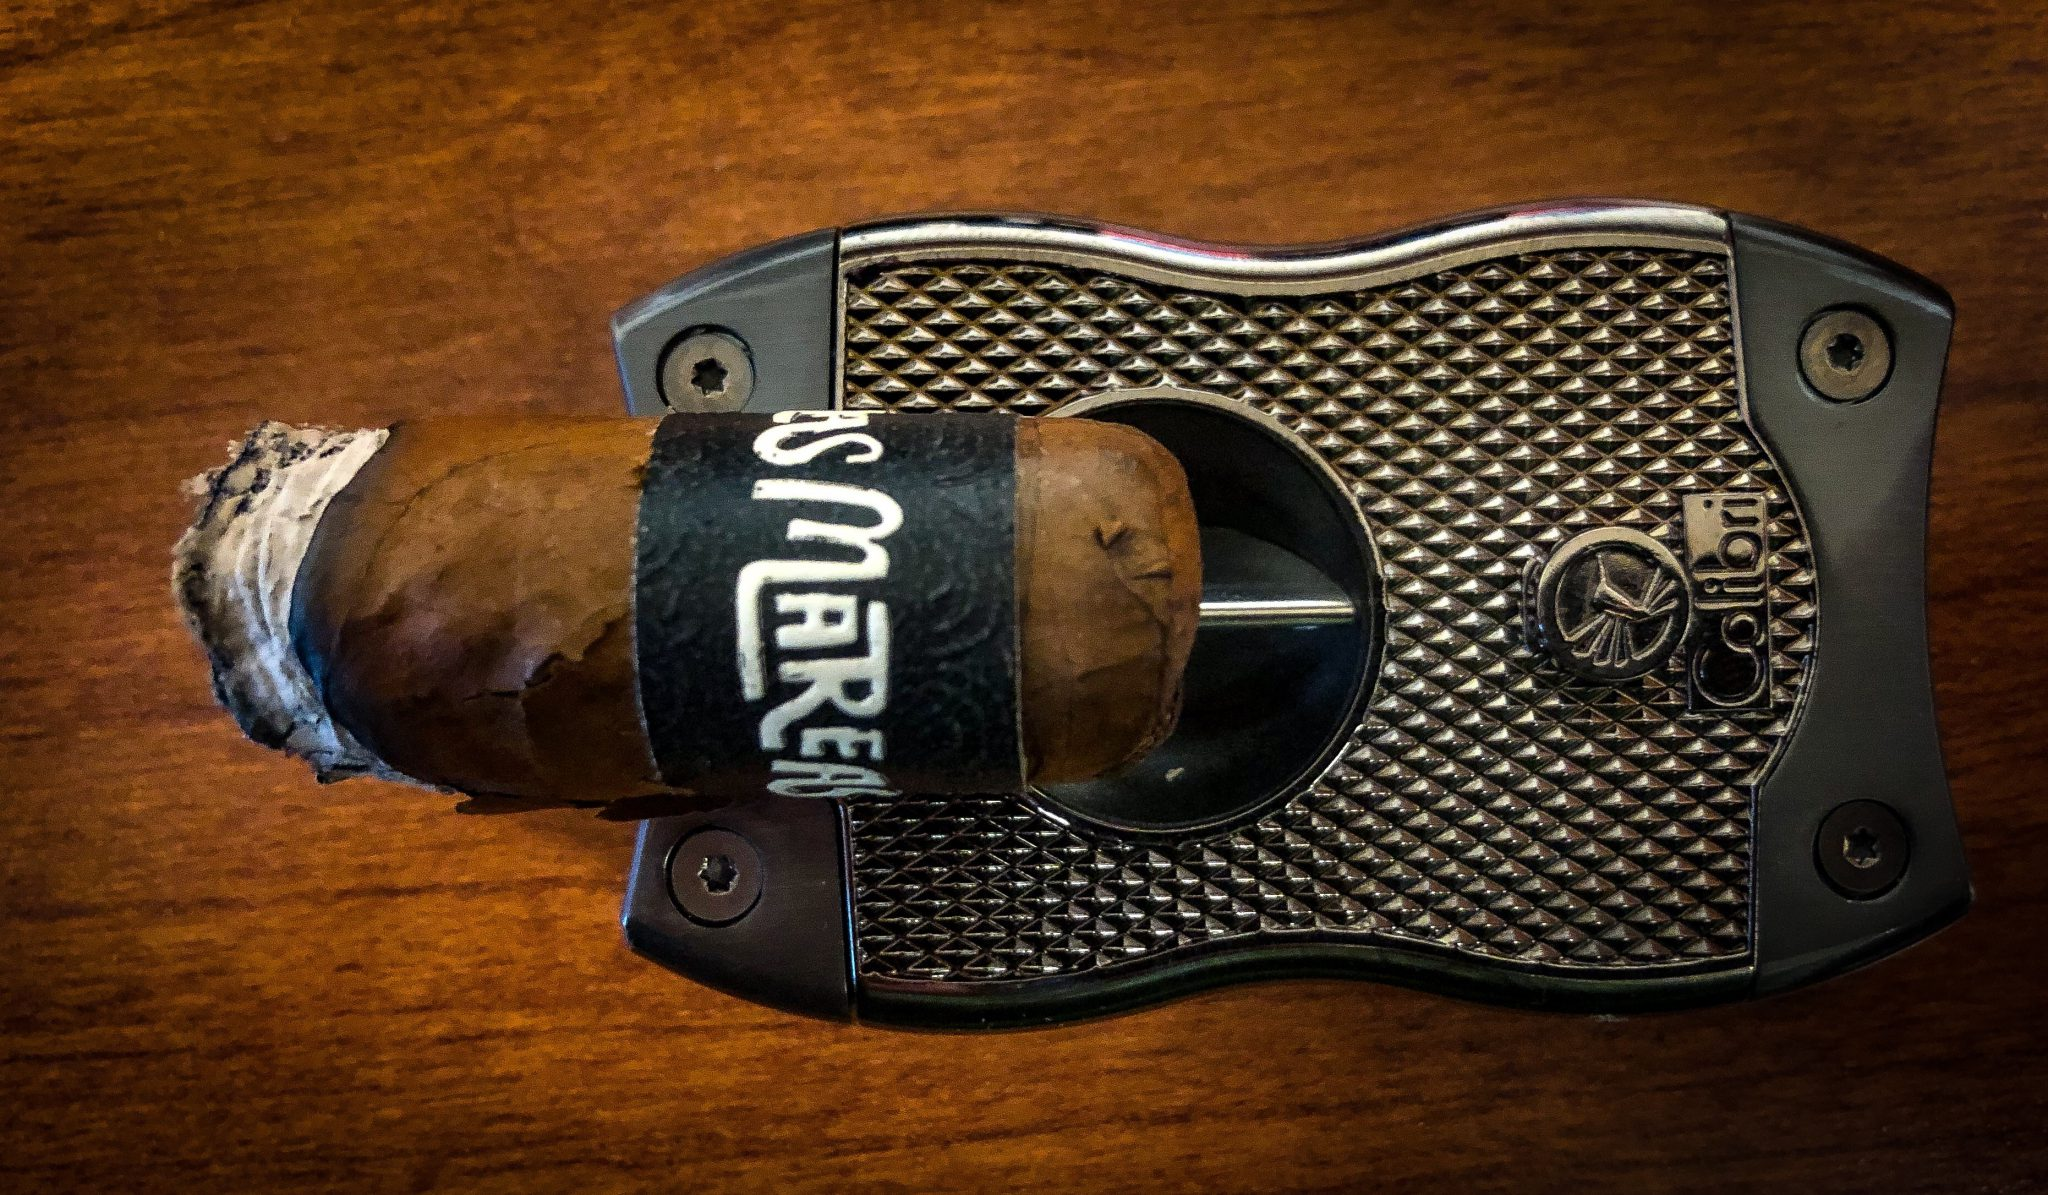 Crowned Heads Cigars Guide Crowned Heads Las Mareas cigar review by Jared Gulick